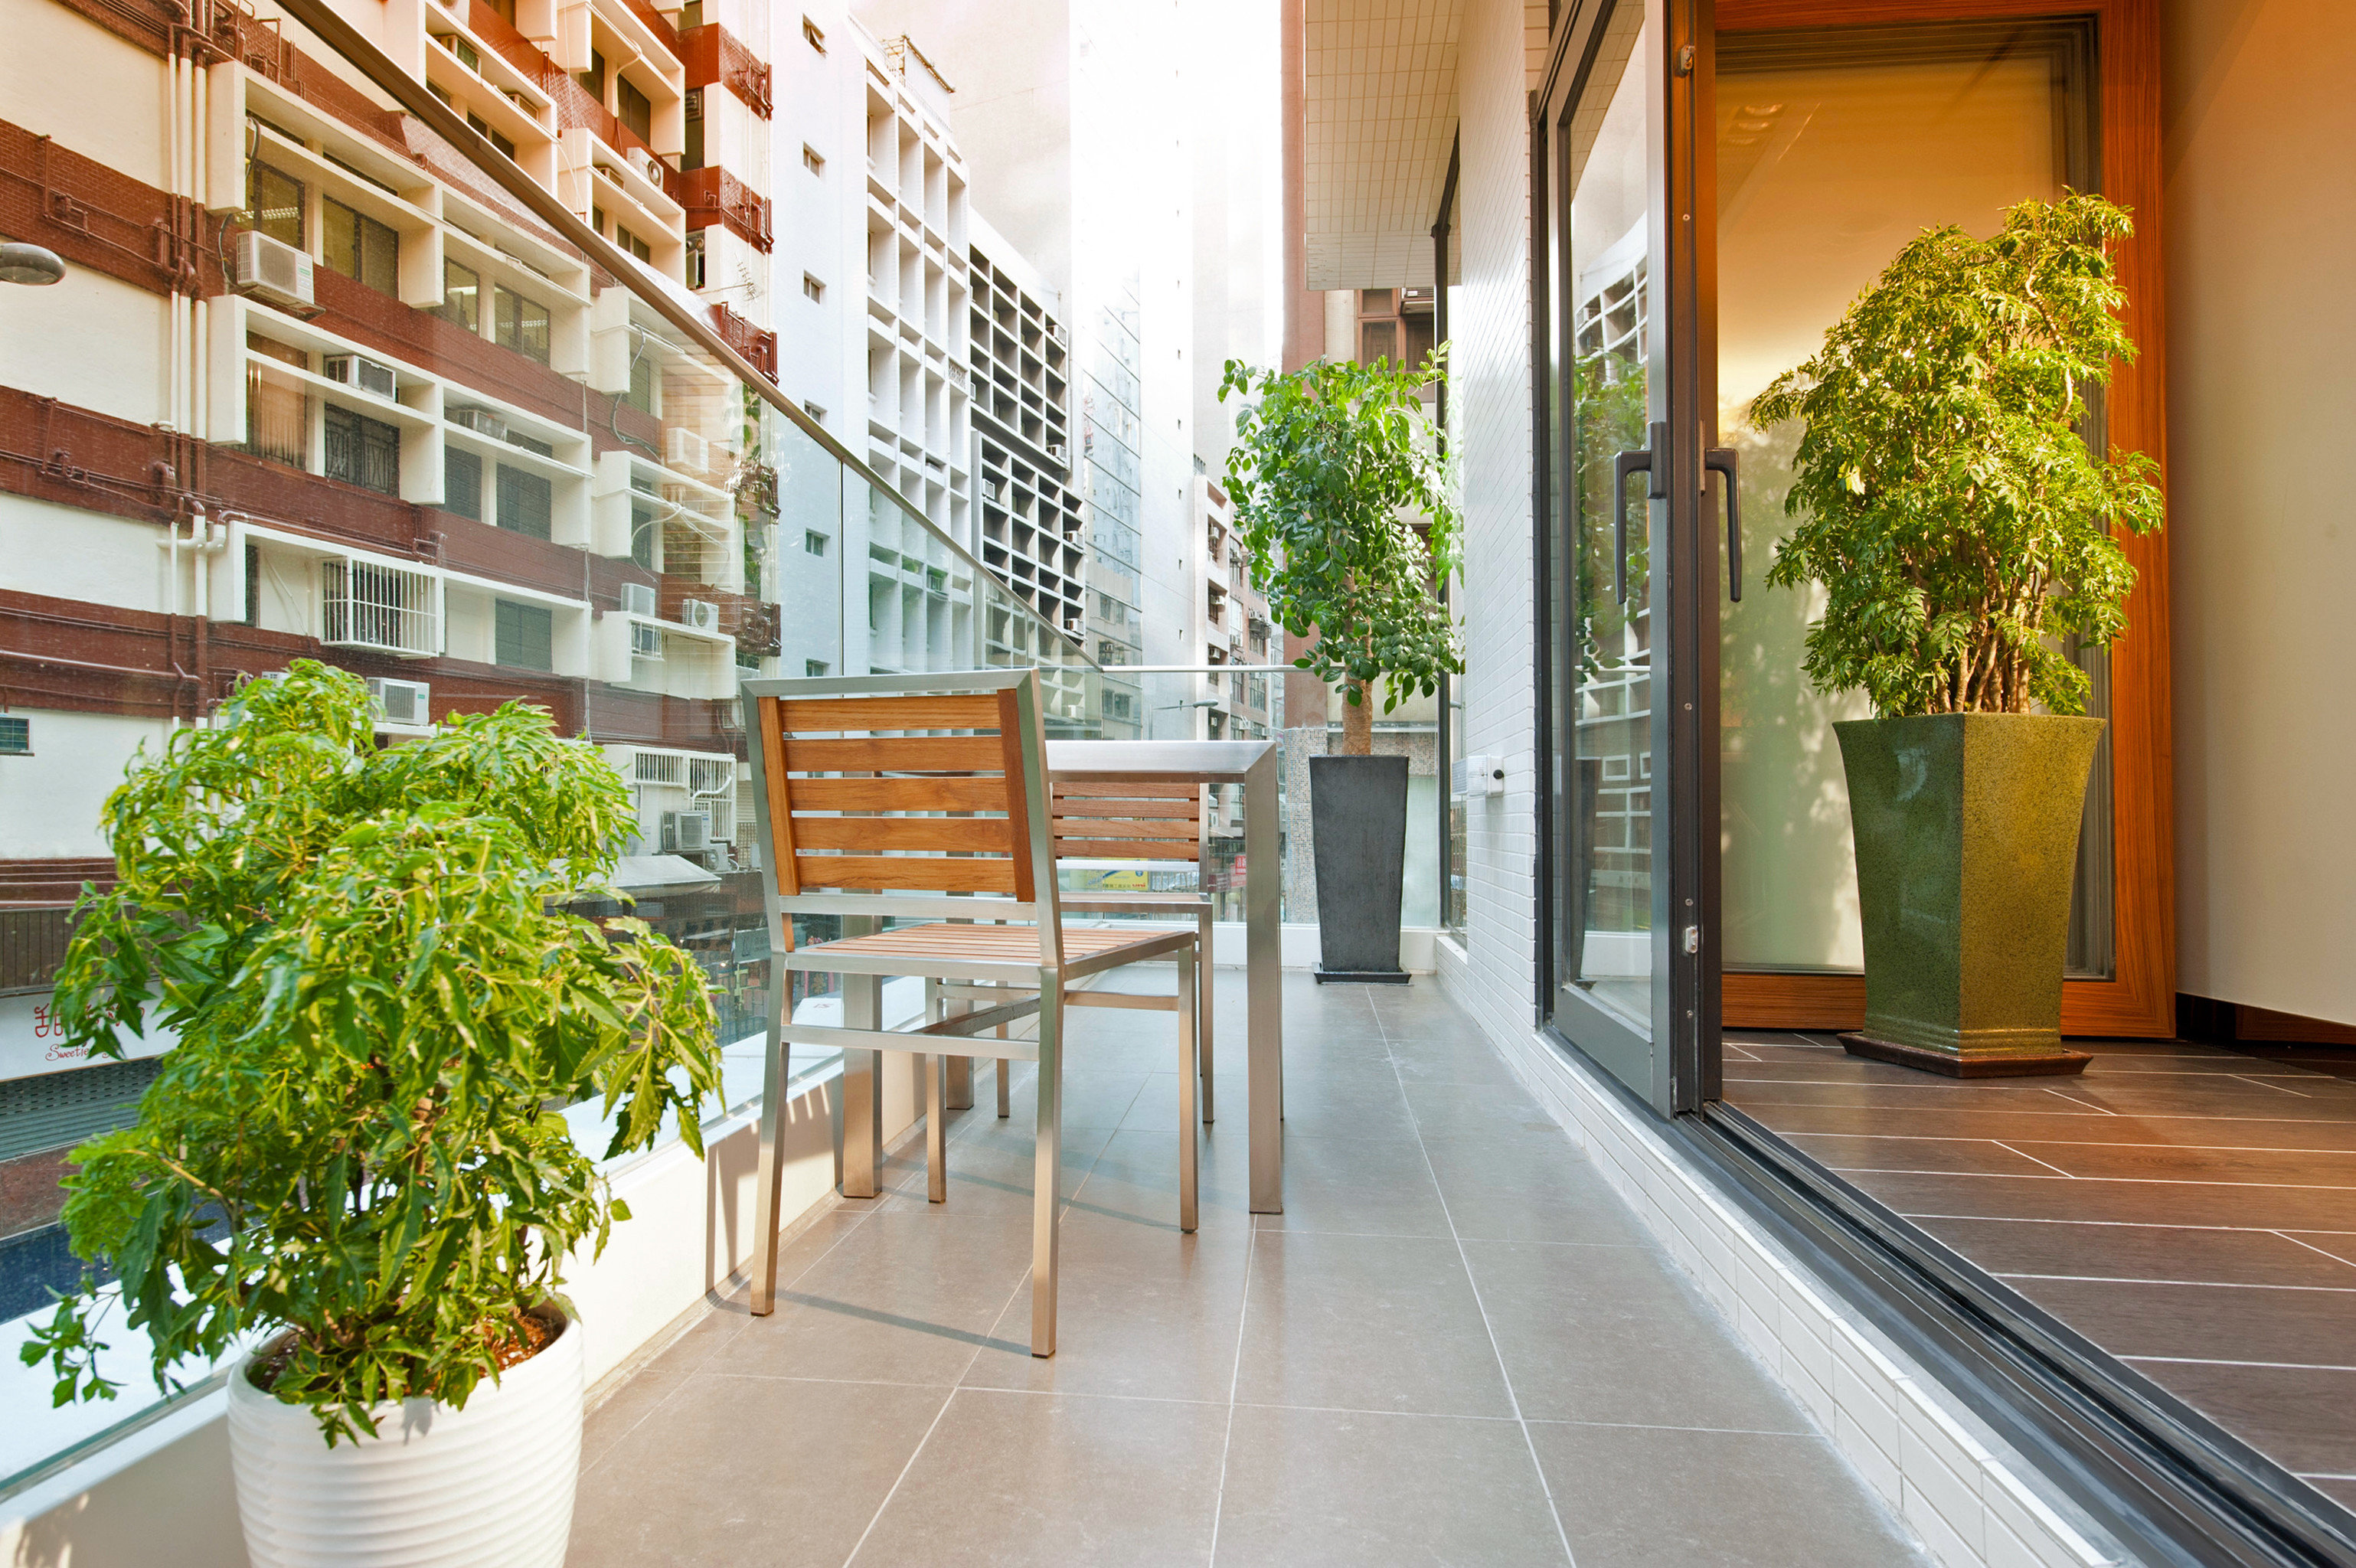 City Classic Dining Drink Eat Patio property Lobby building condominium Courtyard house Architecture home professional flooring plant